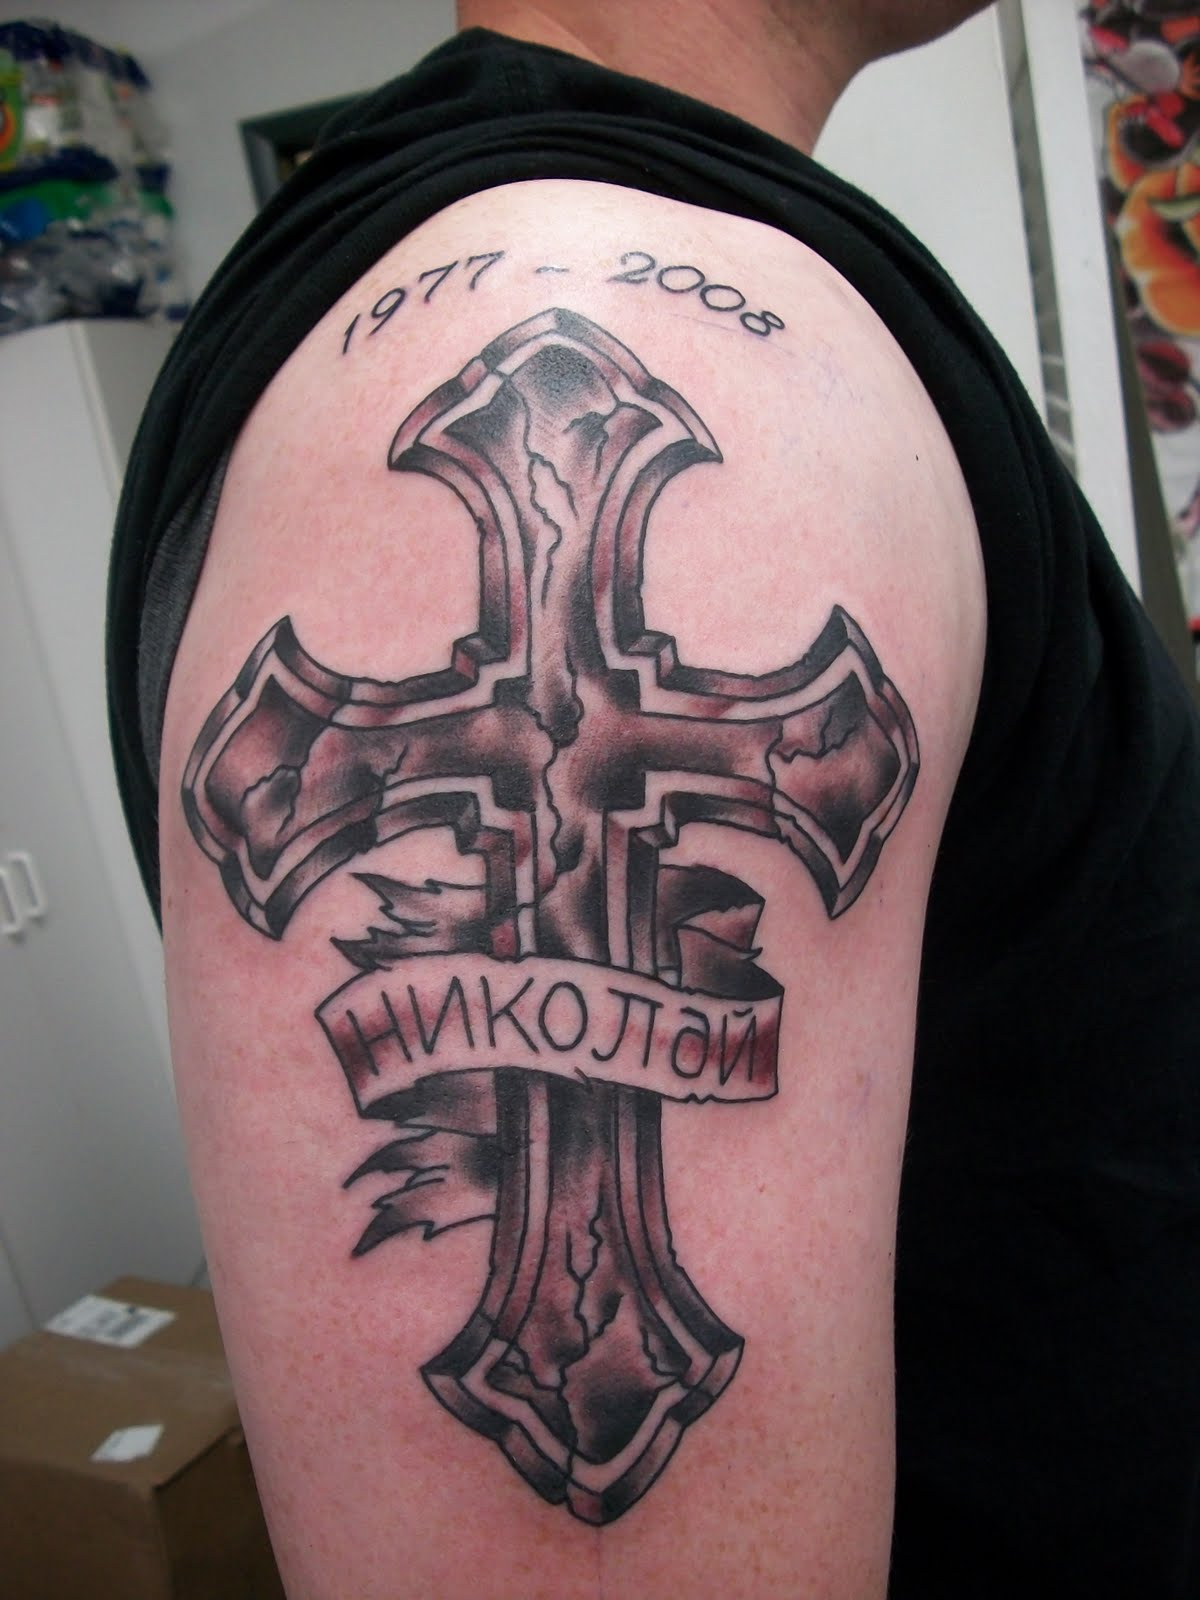 Rip tattoos designs ideas and meaning tattoos for you for Tattoos ideas for men